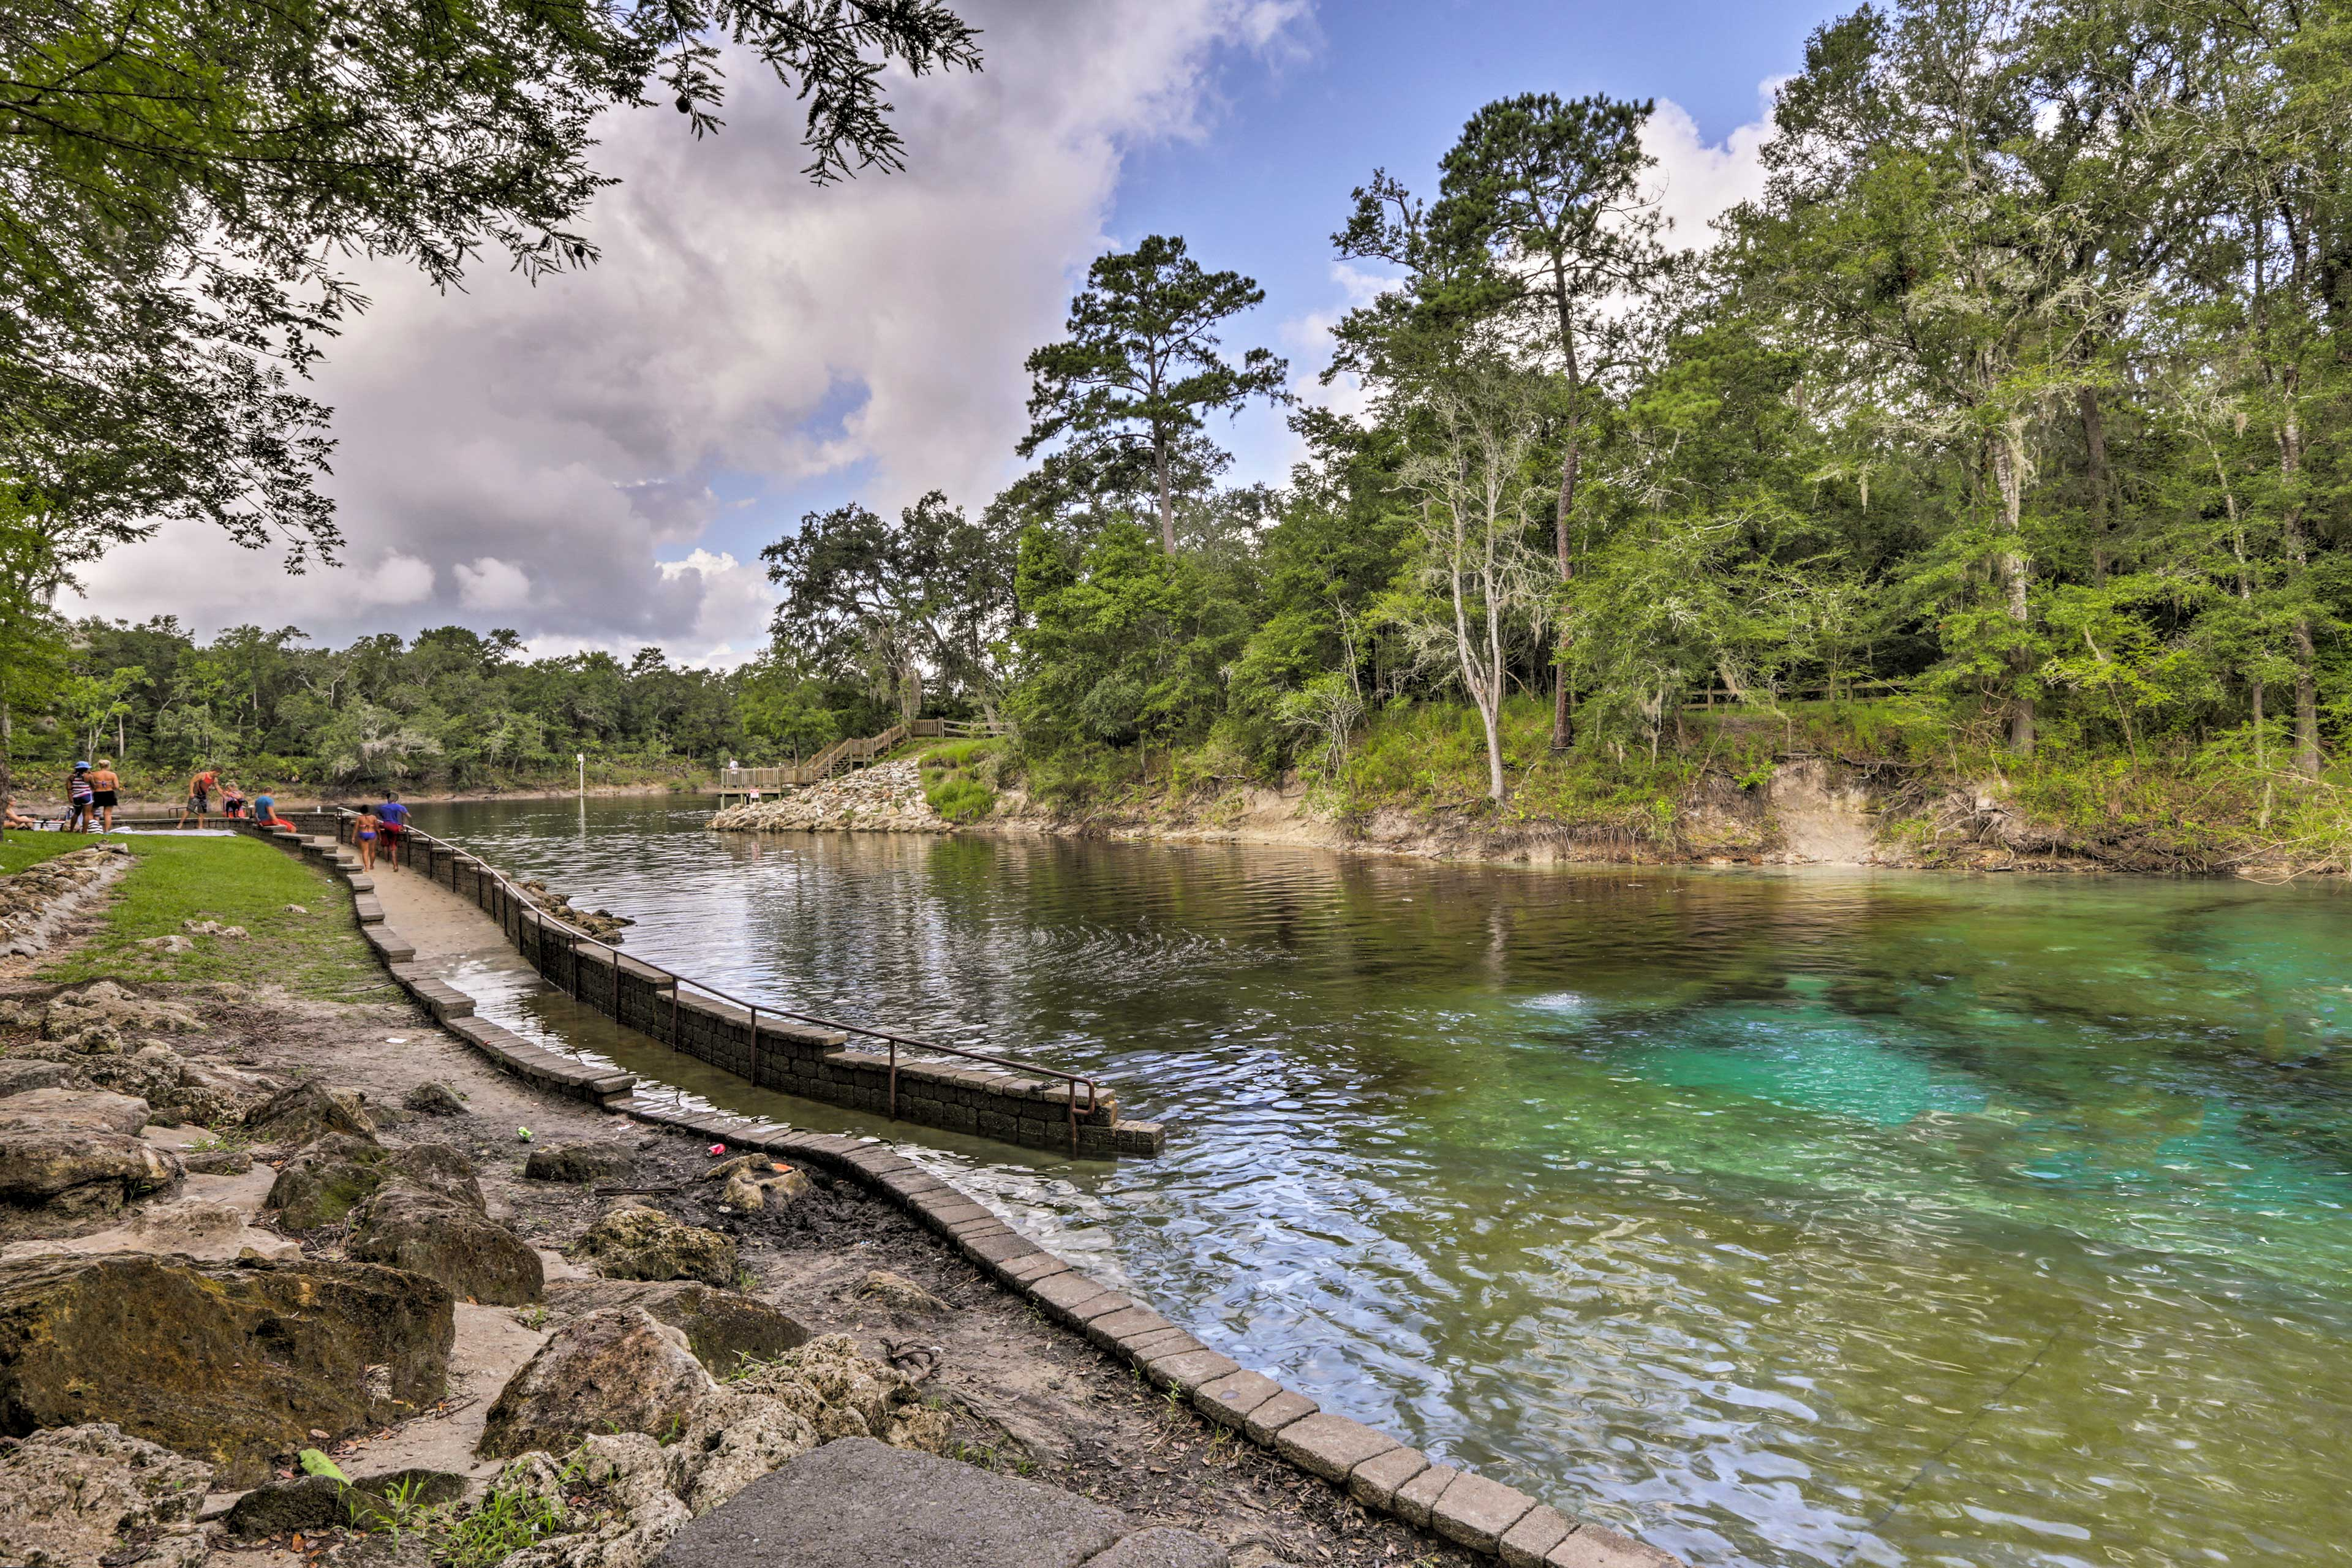 These turquoise waters are great for cave diving!